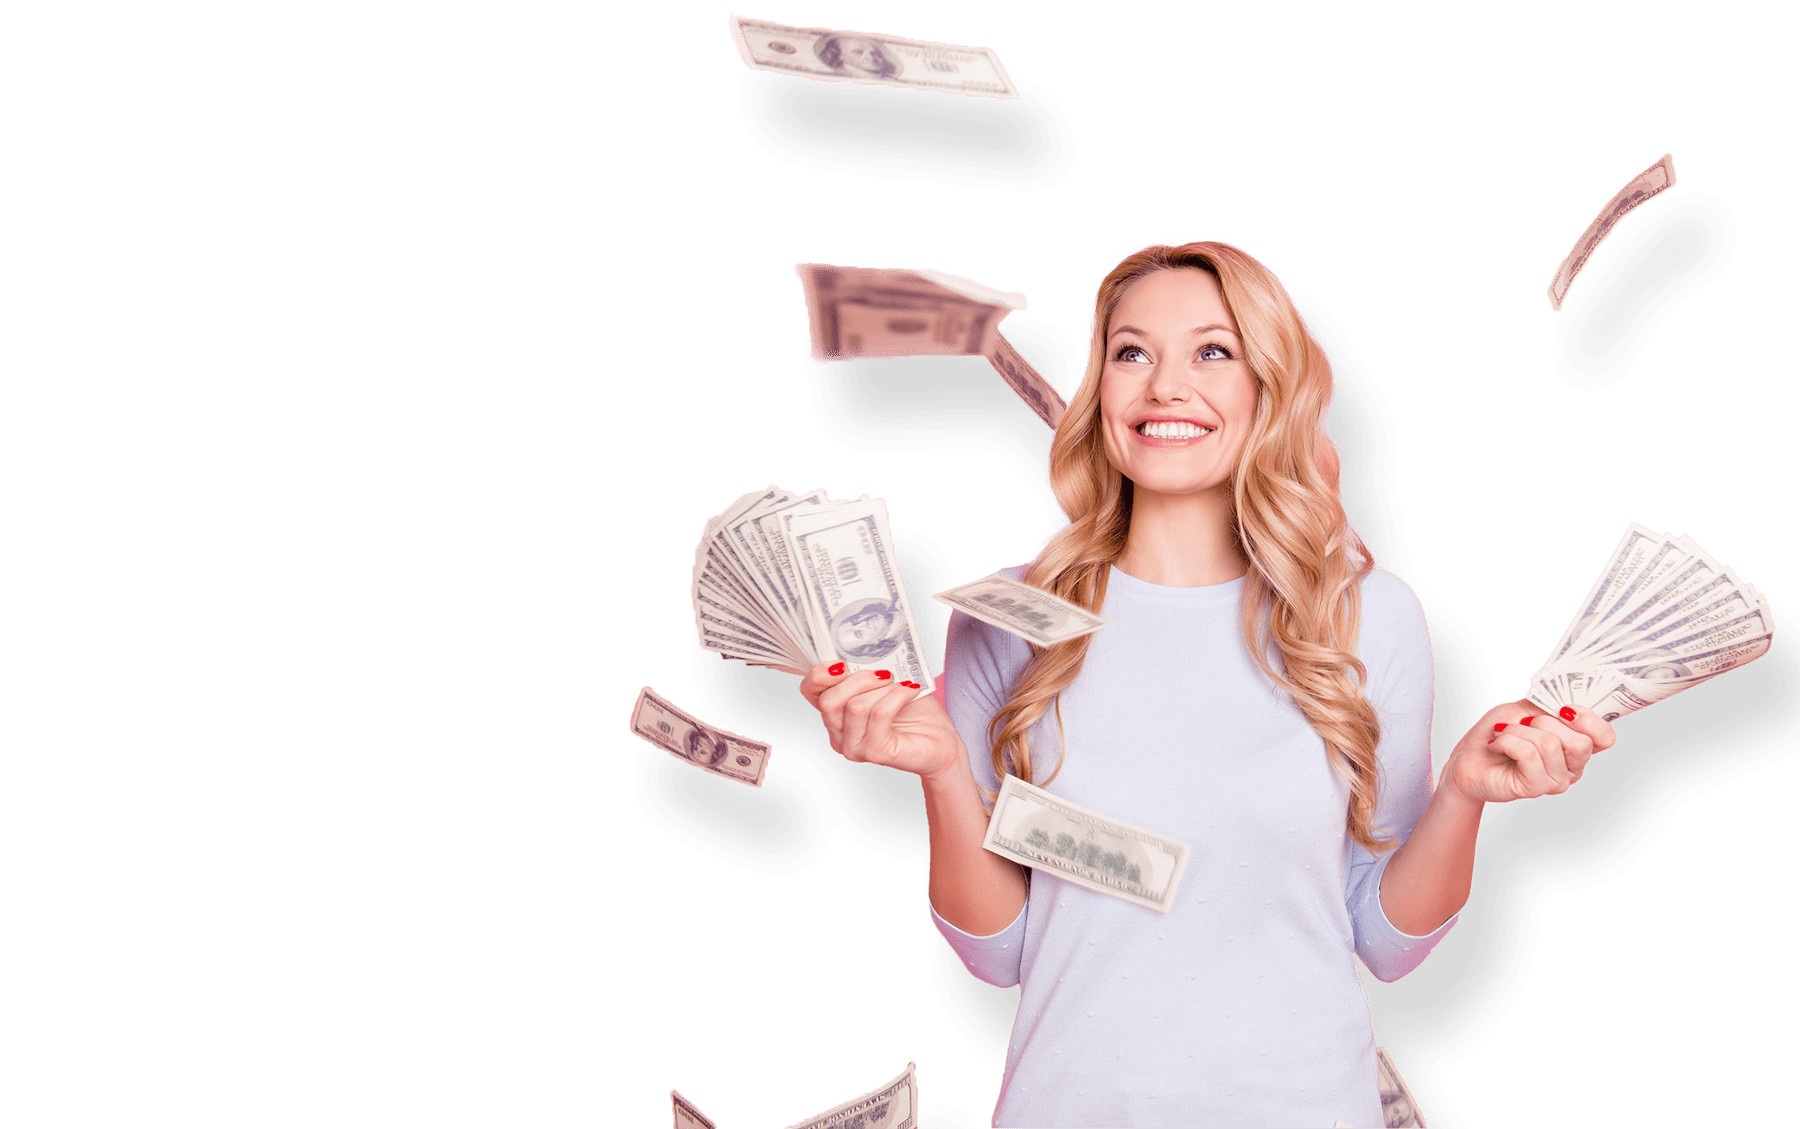 Girl tossing cash with fanned cash in hands